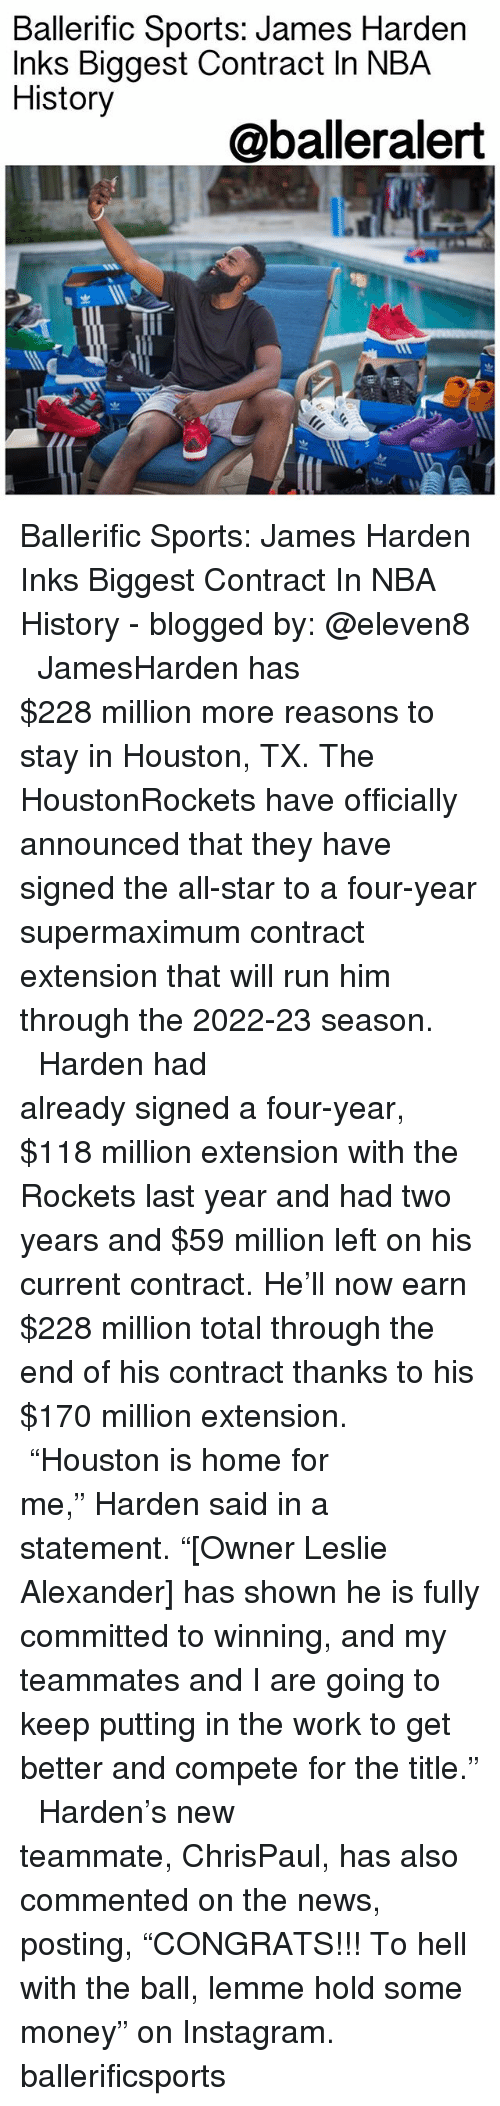 """All Star, Instagram, and James Harden: Ballerific Sports: James Harden  Inks Biggest Contract In NBA  History  @balleralert  渹ㄓ Ballerific Sports: James Harden Inks Biggest Contract In NBA History - blogged by: @eleven8 ⠀⠀⠀⠀⠀⠀⠀⠀⠀ ⠀⠀⠀⠀⠀⠀⠀⠀⠀ JamesHarden has $228 million more reasons to stay in Houston, TX. The HoustonRockets have officially announced that they have signed the all-star to a four-year supermaximum contract extension that will run him through the 2022-23 season. ⠀⠀⠀⠀⠀⠀⠀⠀⠀ ⠀⠀⠀⠀⠀⠀⠀⠀⠀ Harden had already signed a four-year, $118 million extension with the Rockets last year and had two years and $59 million left on his current contract. He'll now earn $228 million total through the end of his contract thanks to his $170 million extension. ⠀⠀⠀⠀⠀⠀⠀⠀⠀ ⠀⠀⠀⠀⠀⠀⠀⠀⠀ """"Houston is home for me,"""" Harden said in a statement. """"[Owner Leslie Alexander] has shown he is fully committed to winning, and my teammates and I are going to keep putting in the work to get better and compete for the title."""" ⠀⠀⠀⠀⠀⠀⠀⠀⠀ ⠀⠀⠀⠀⠀⠀⠀⠀⠀ Harden's new teammate, ChrisPaul, has also commented on the news, posting, """"CONGRATS!!! To hell with the ball, lemme hold some money"""" on Instagram. ballerificsports"""